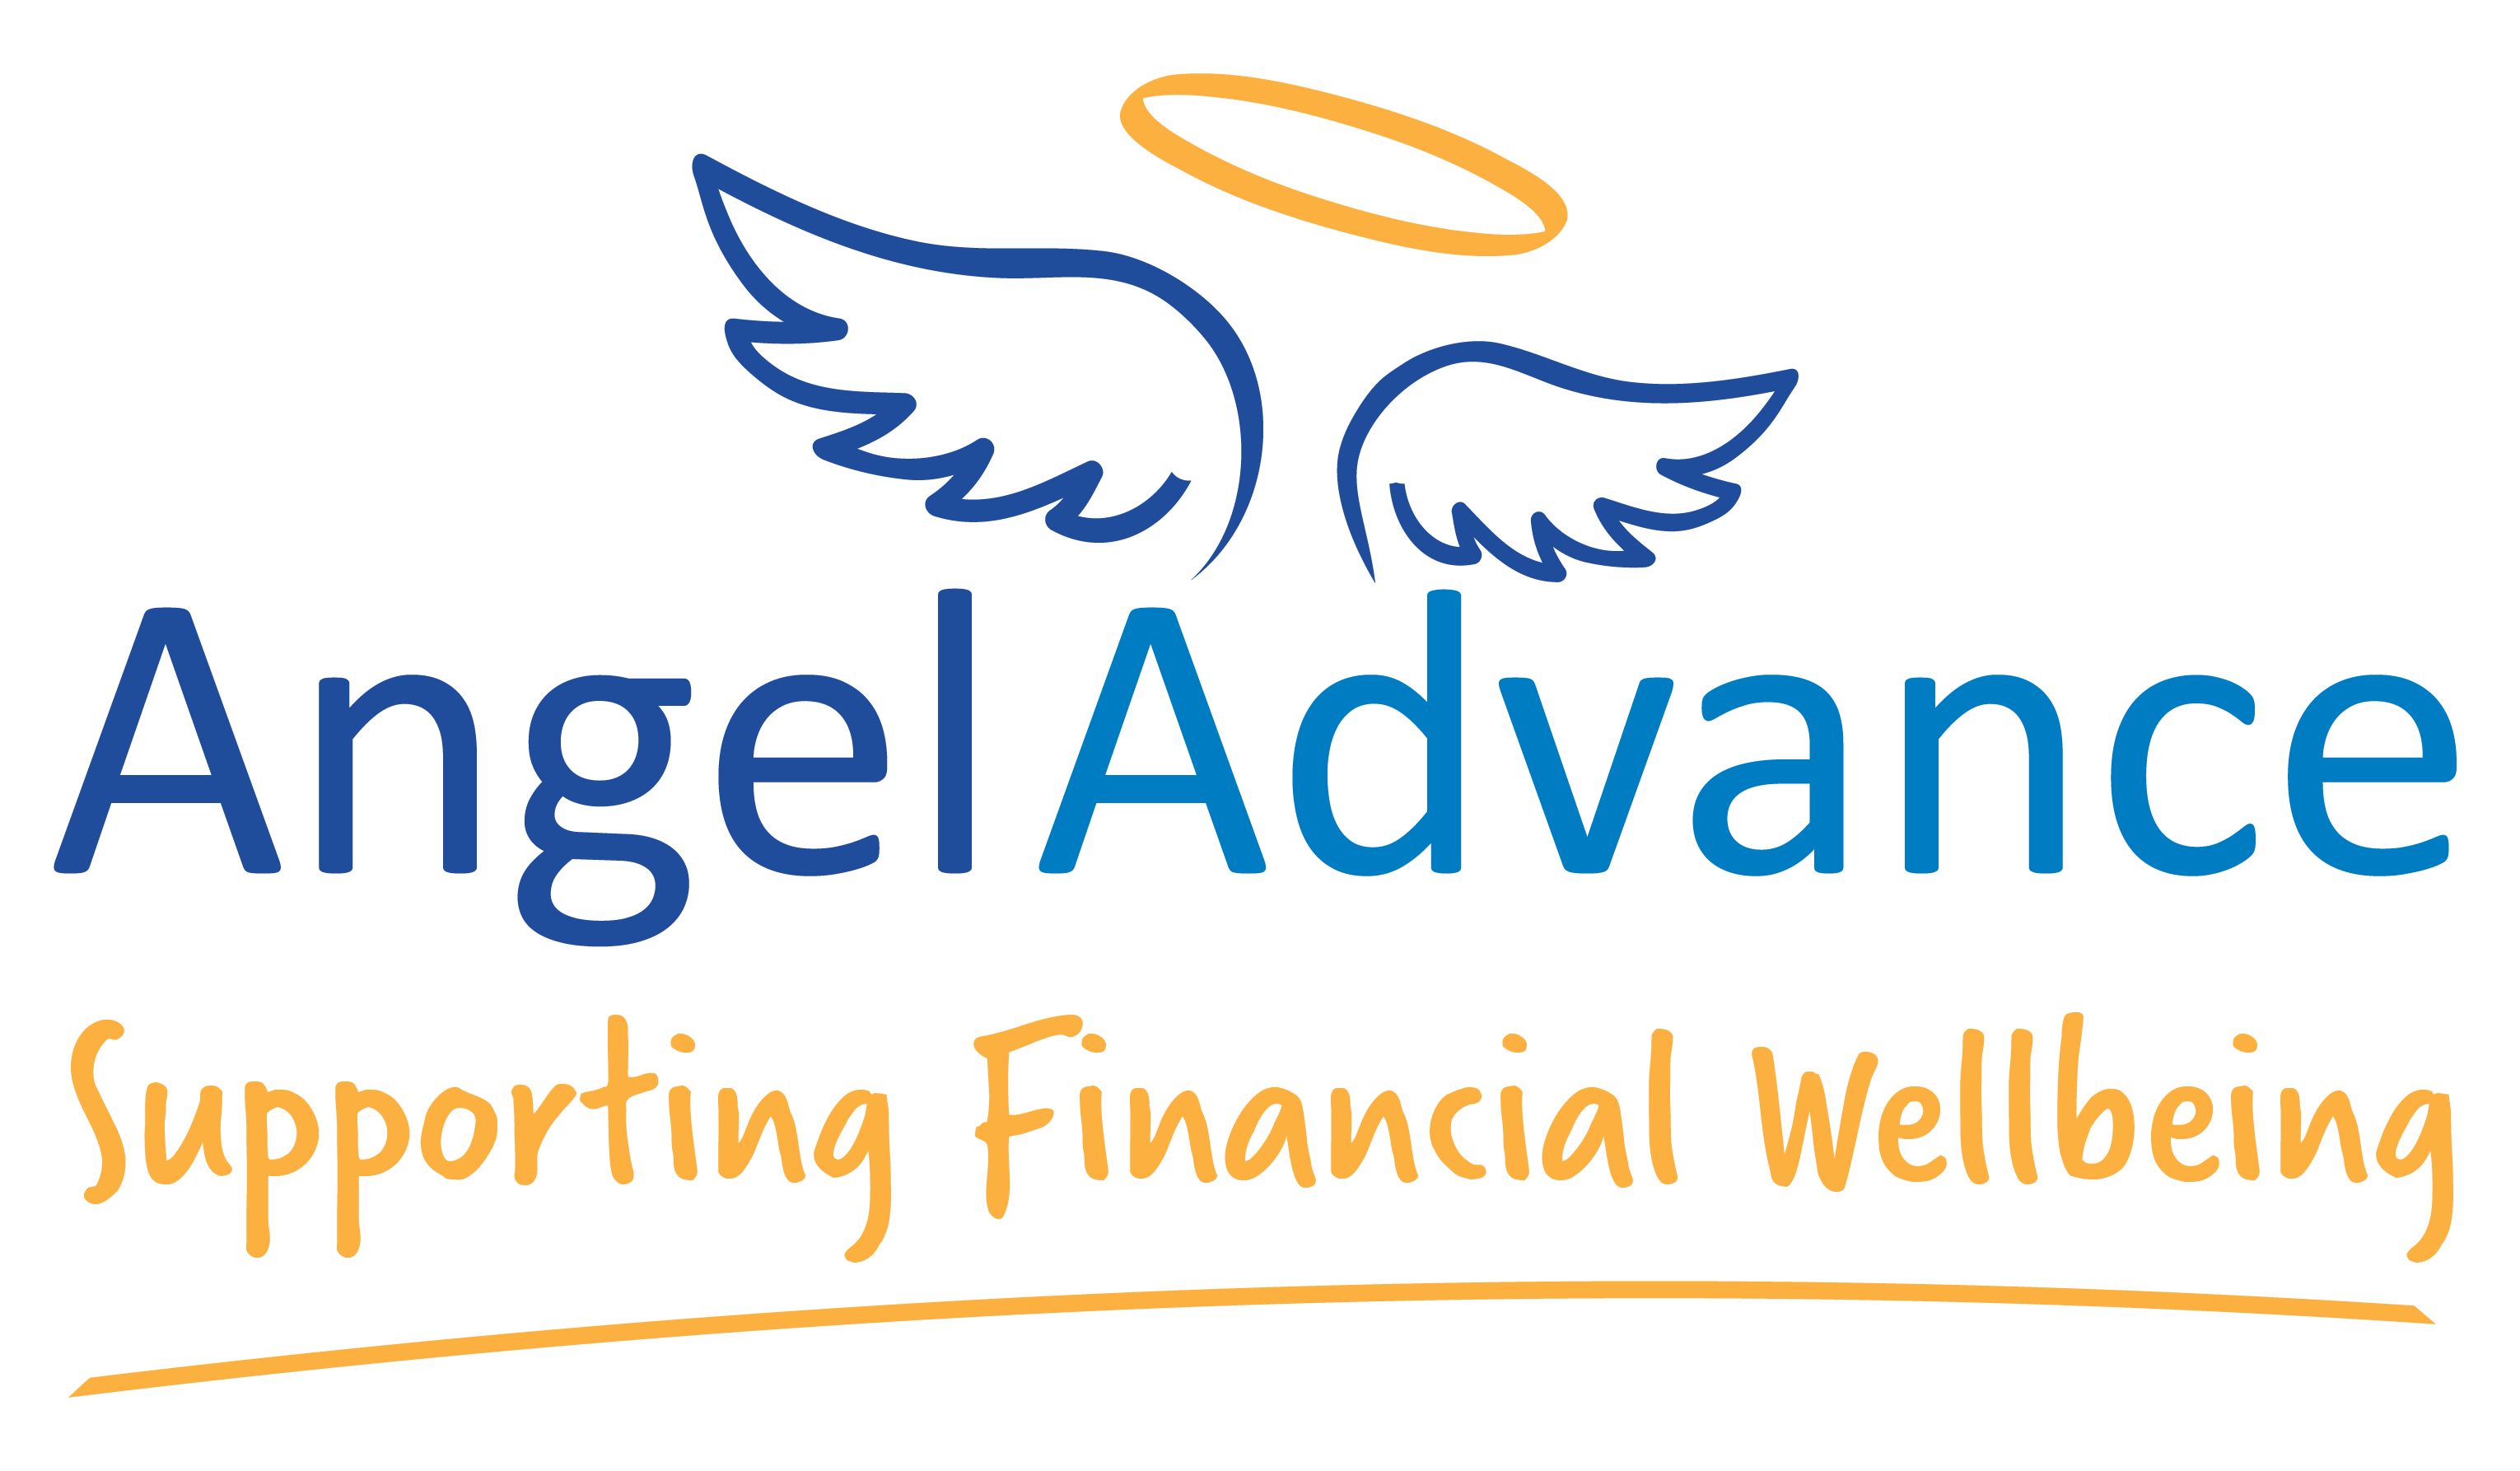 Angel Advance Expert Debt Help